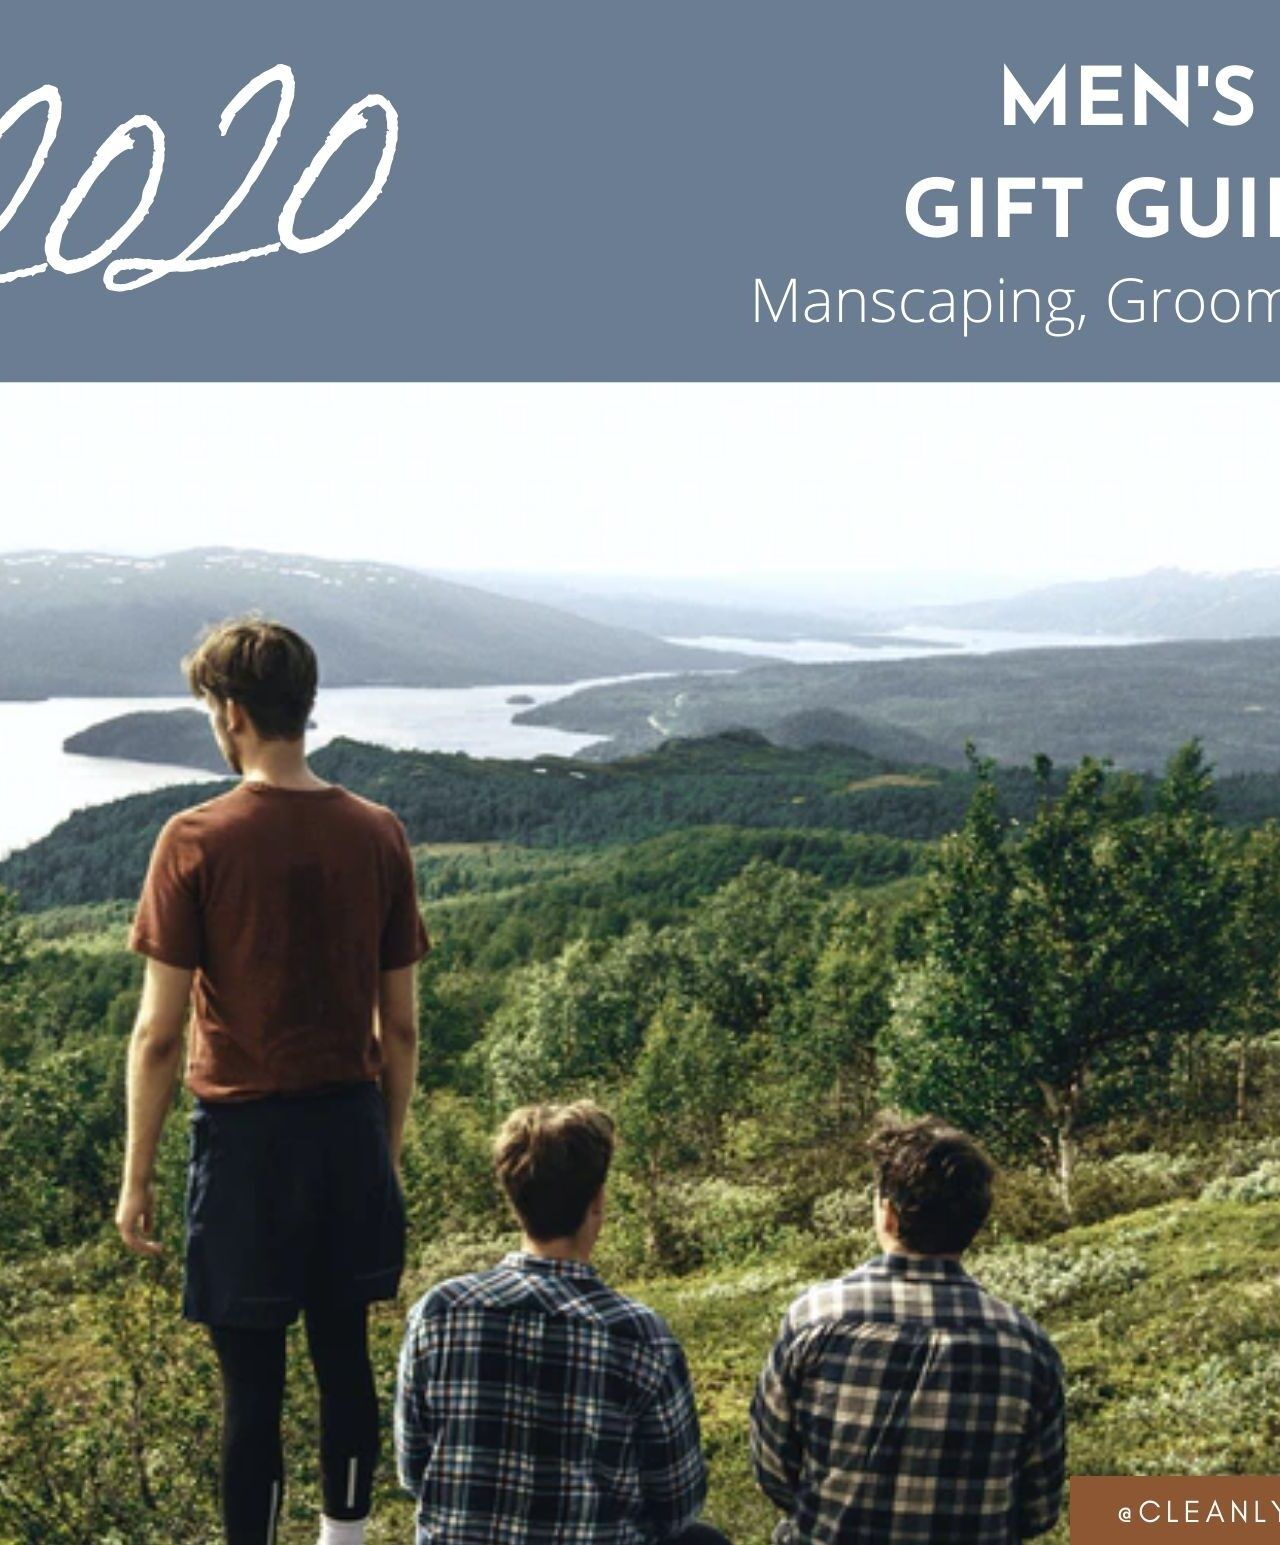 Manscaping and Grooming Gift Guide for 2020